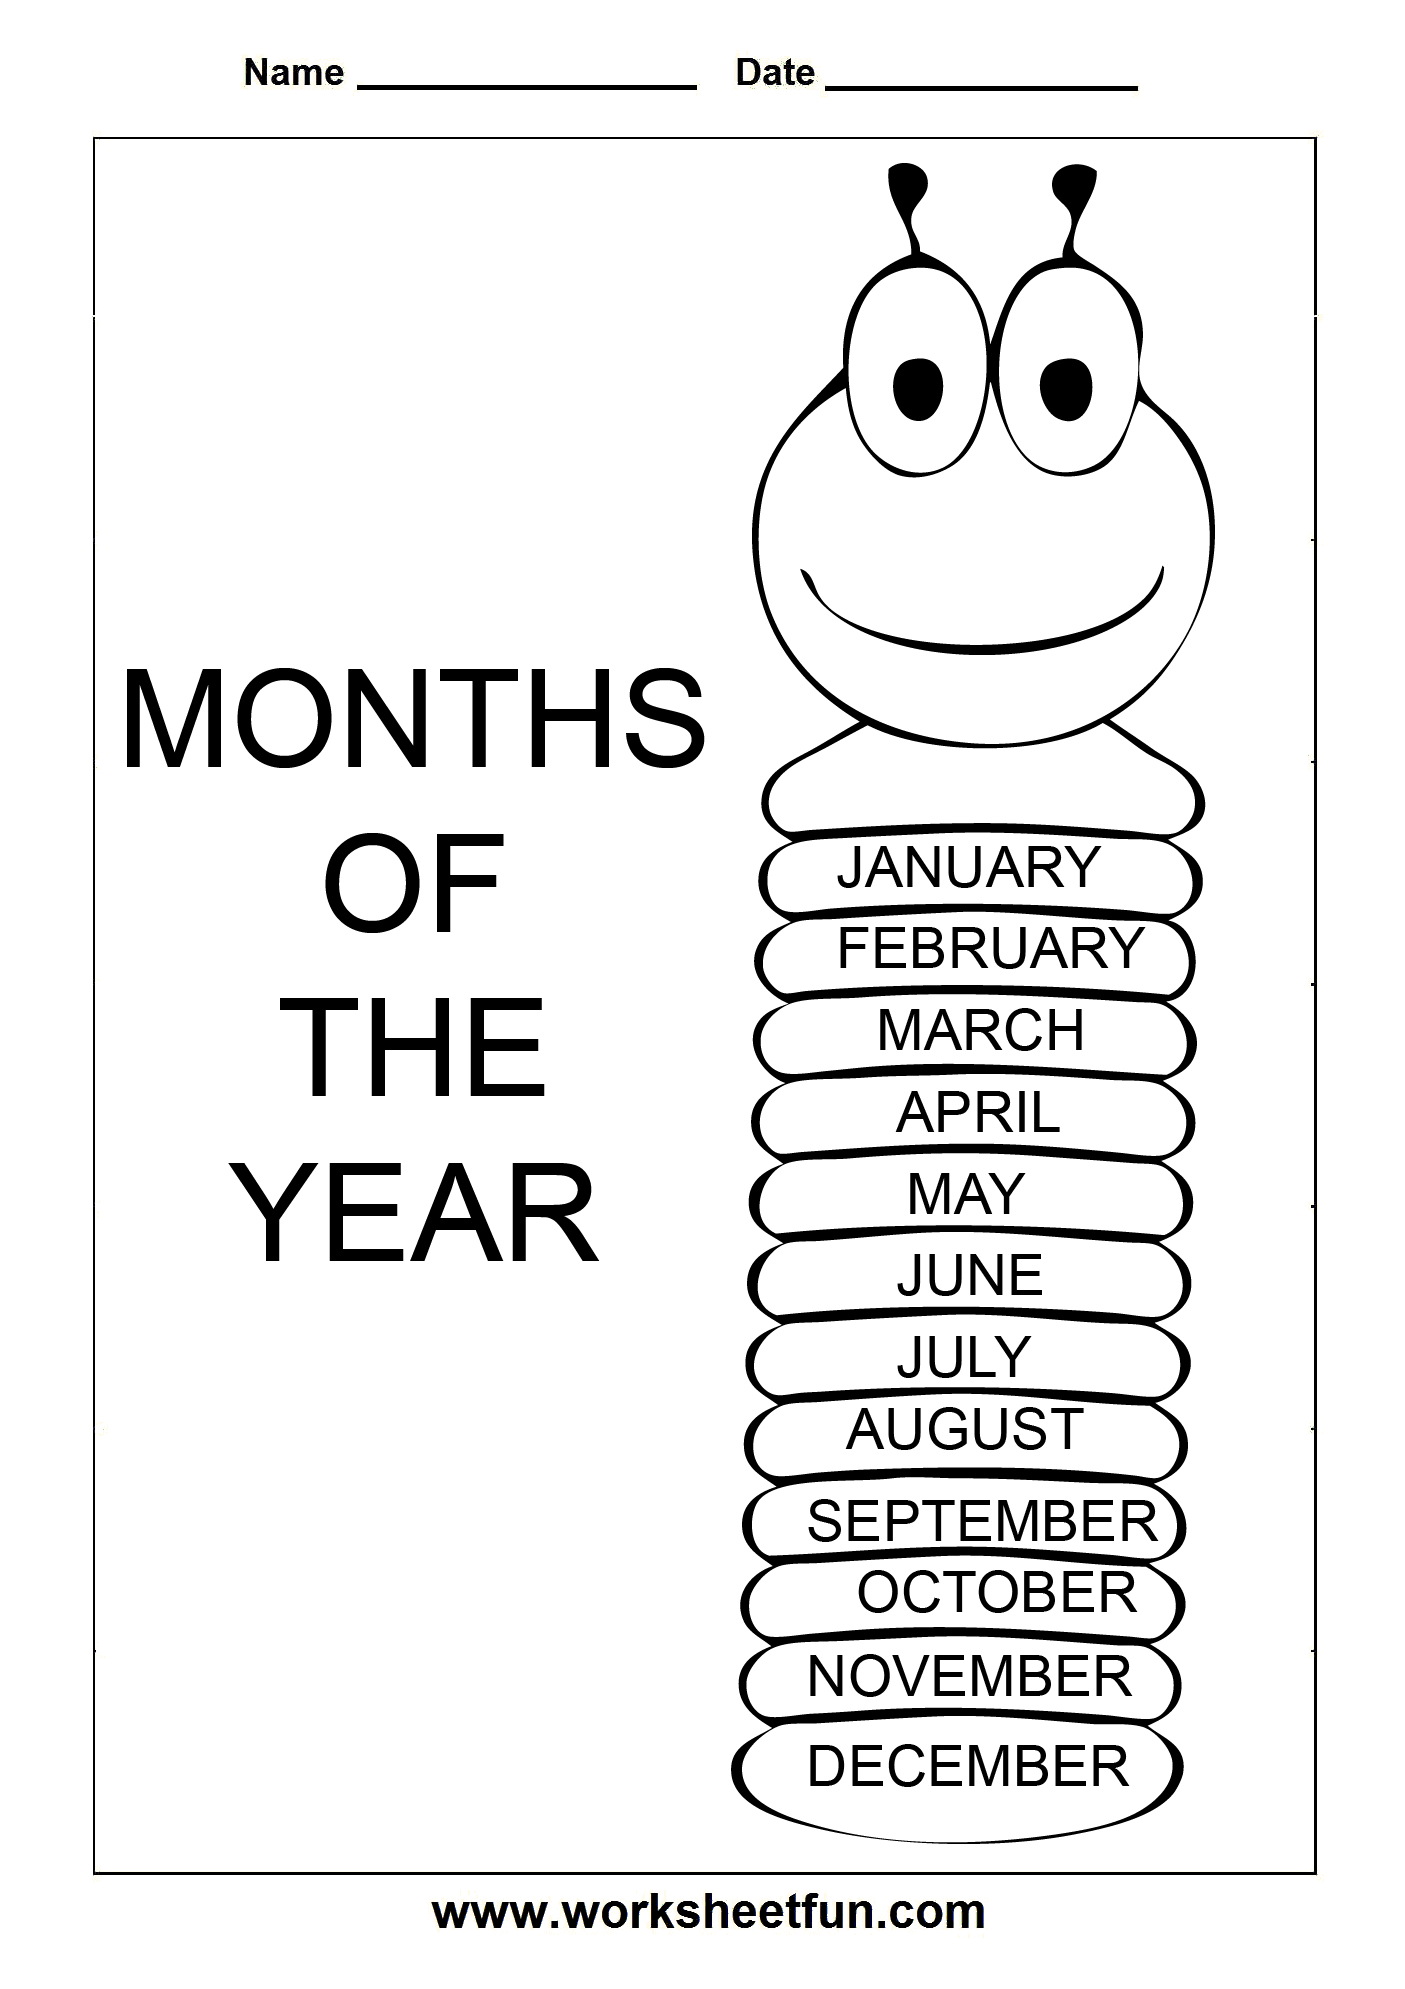 Days Of The Week Amp Months Of The Year